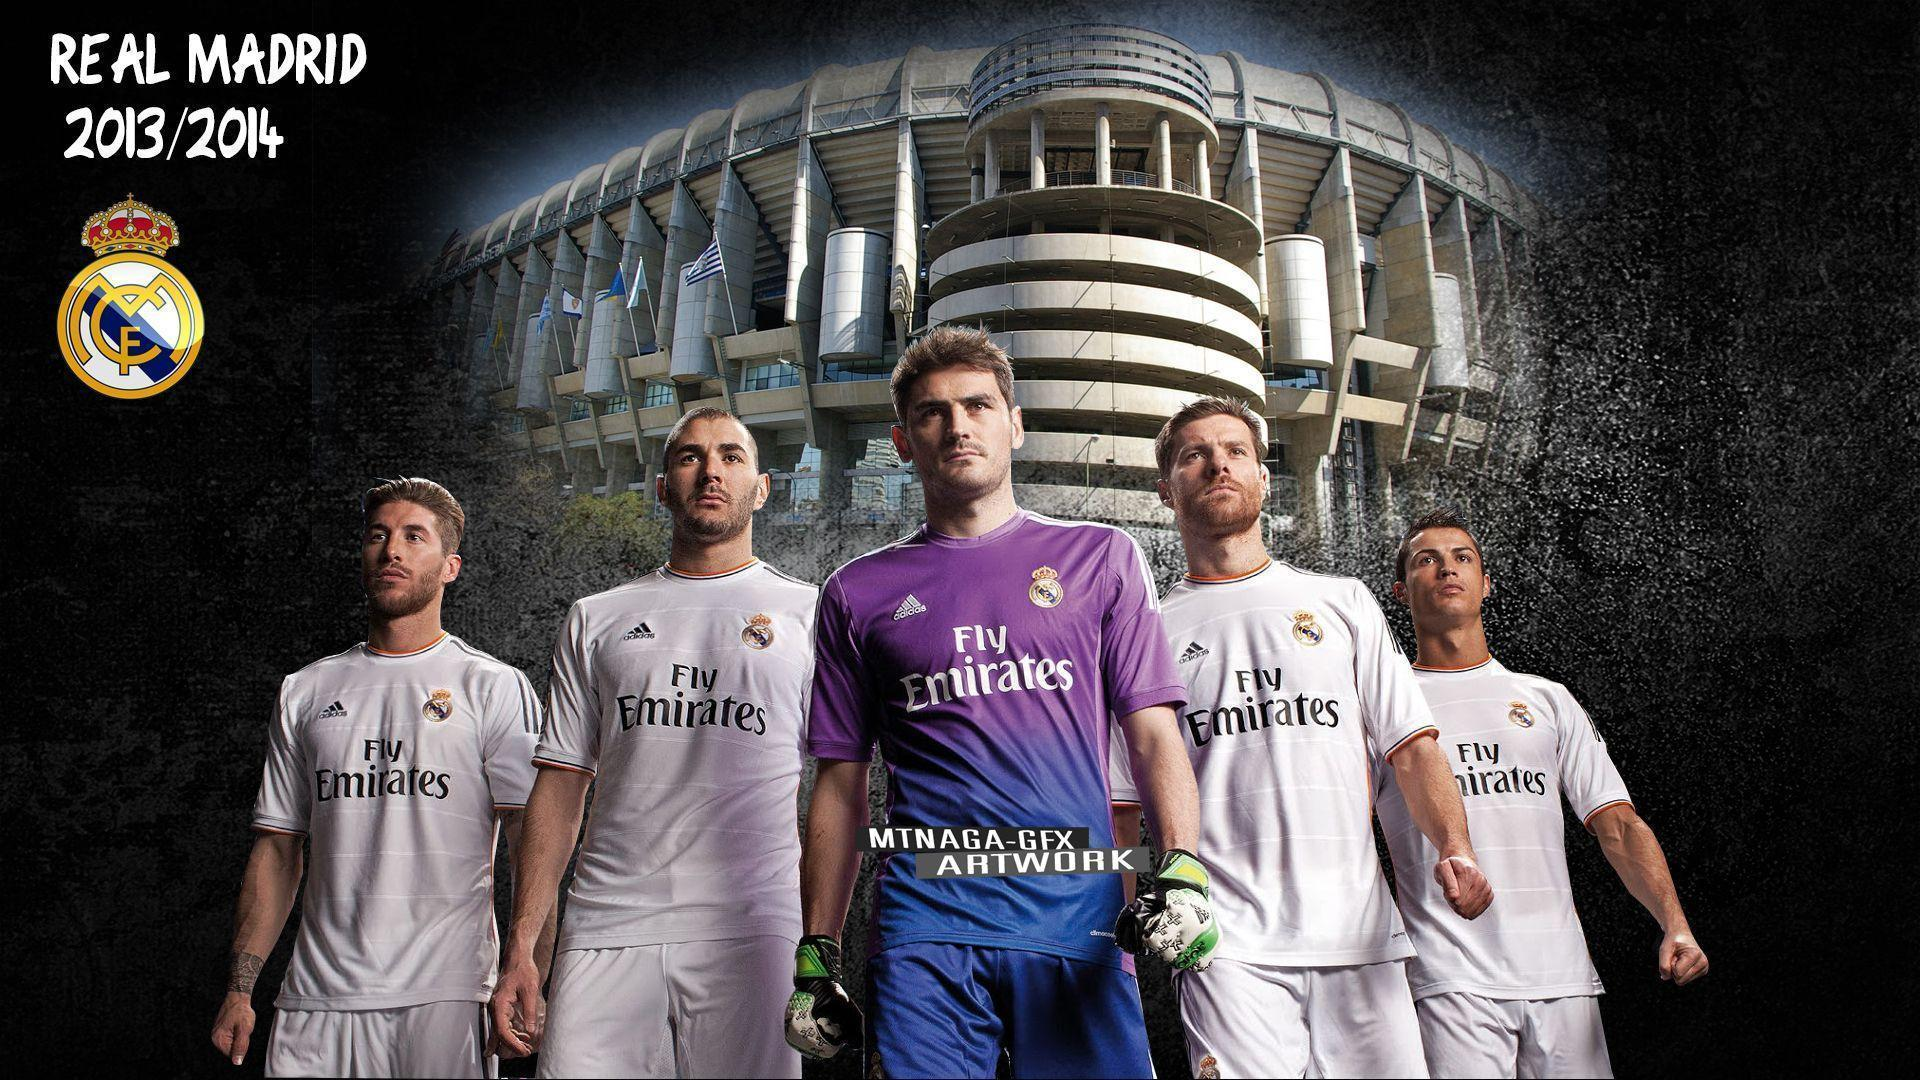 real madrid team 2015 wallpapers